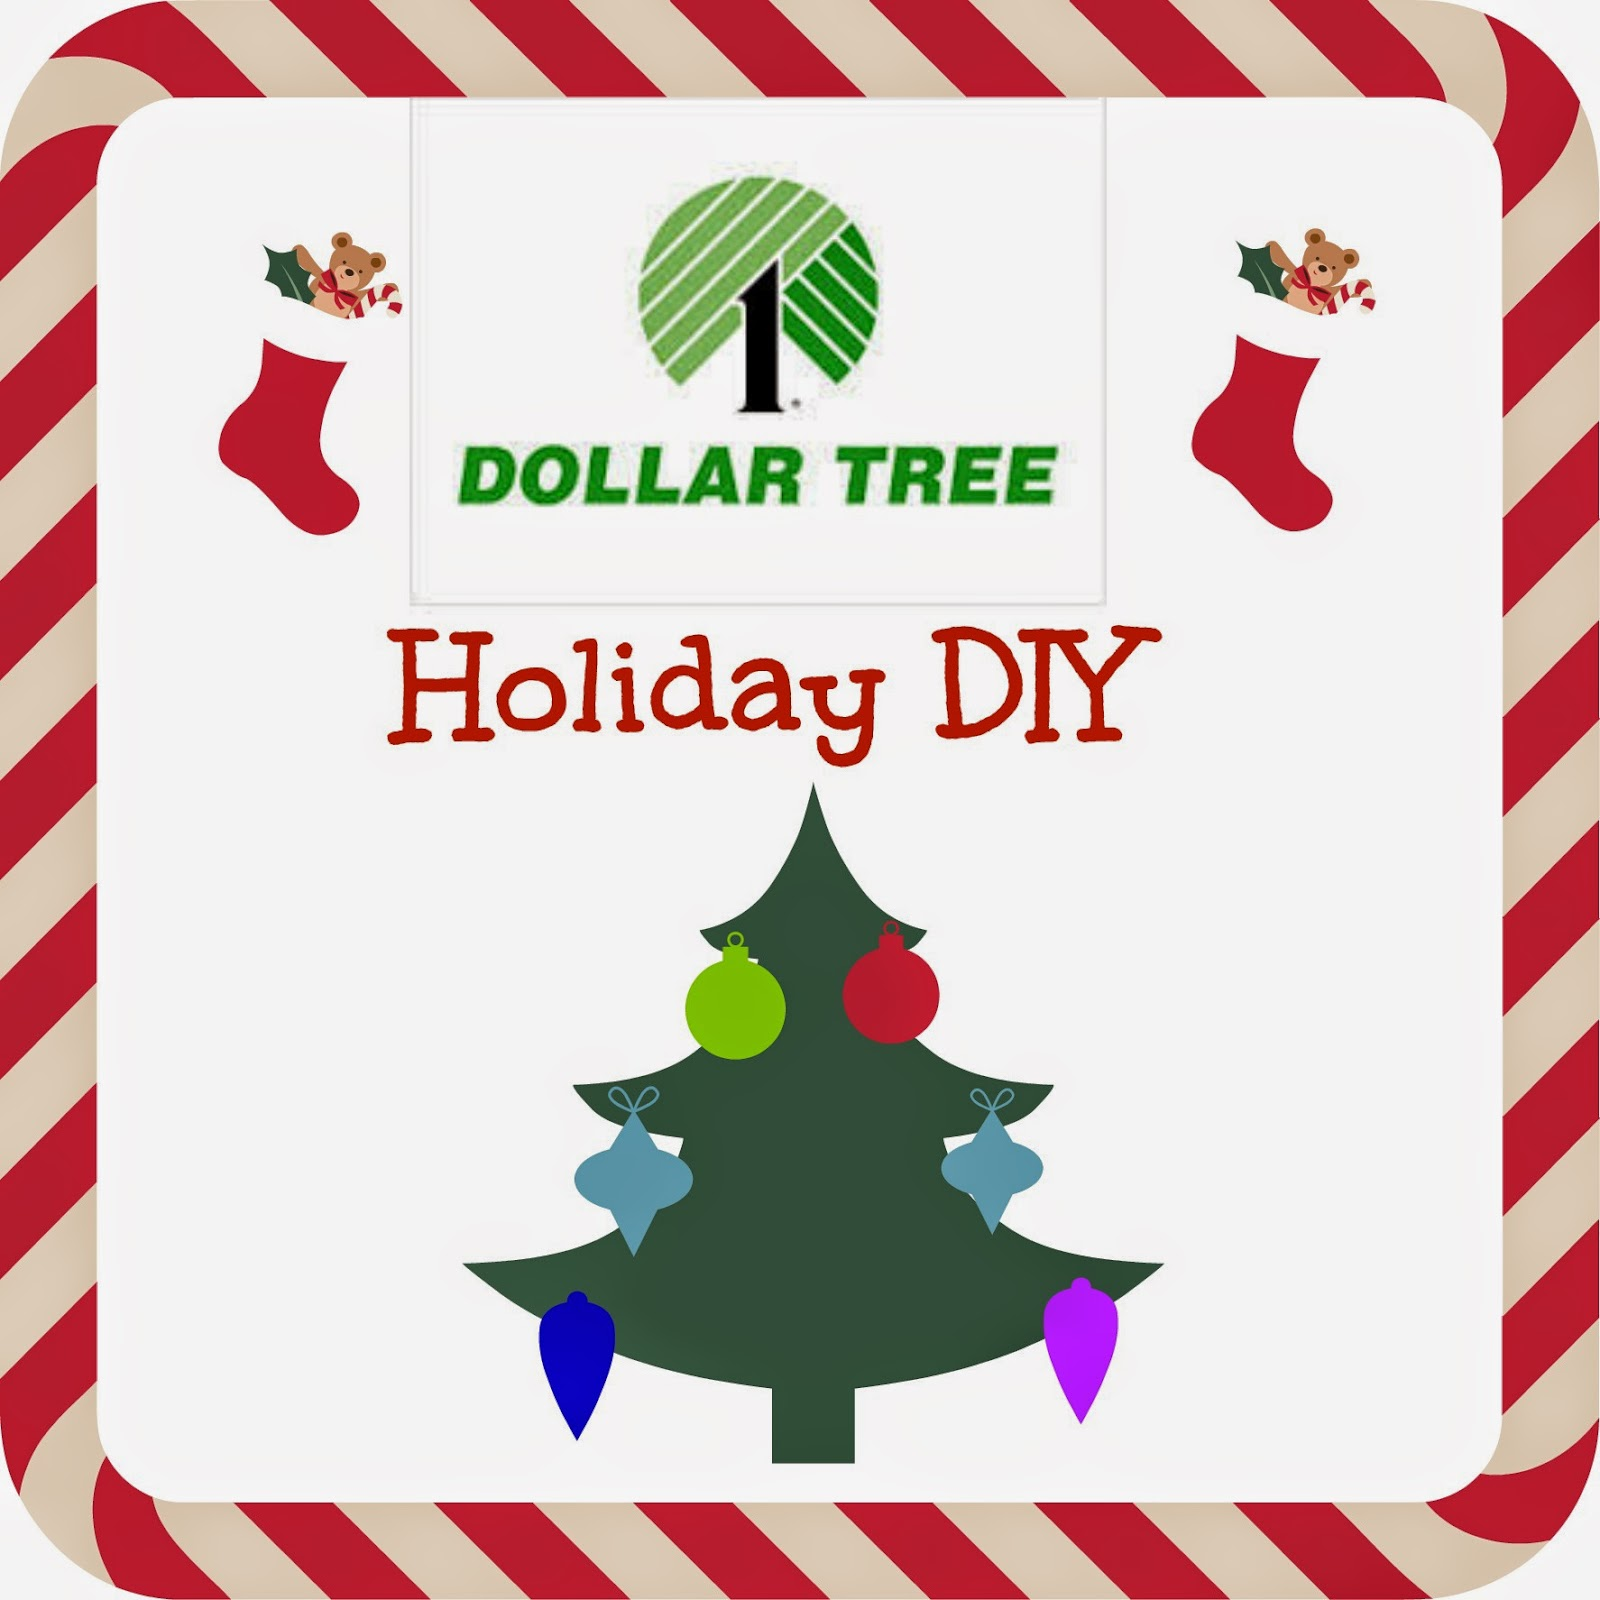 Festive Holiday DIY Inspiration from #DollarTree - Mommy\'s Block Party